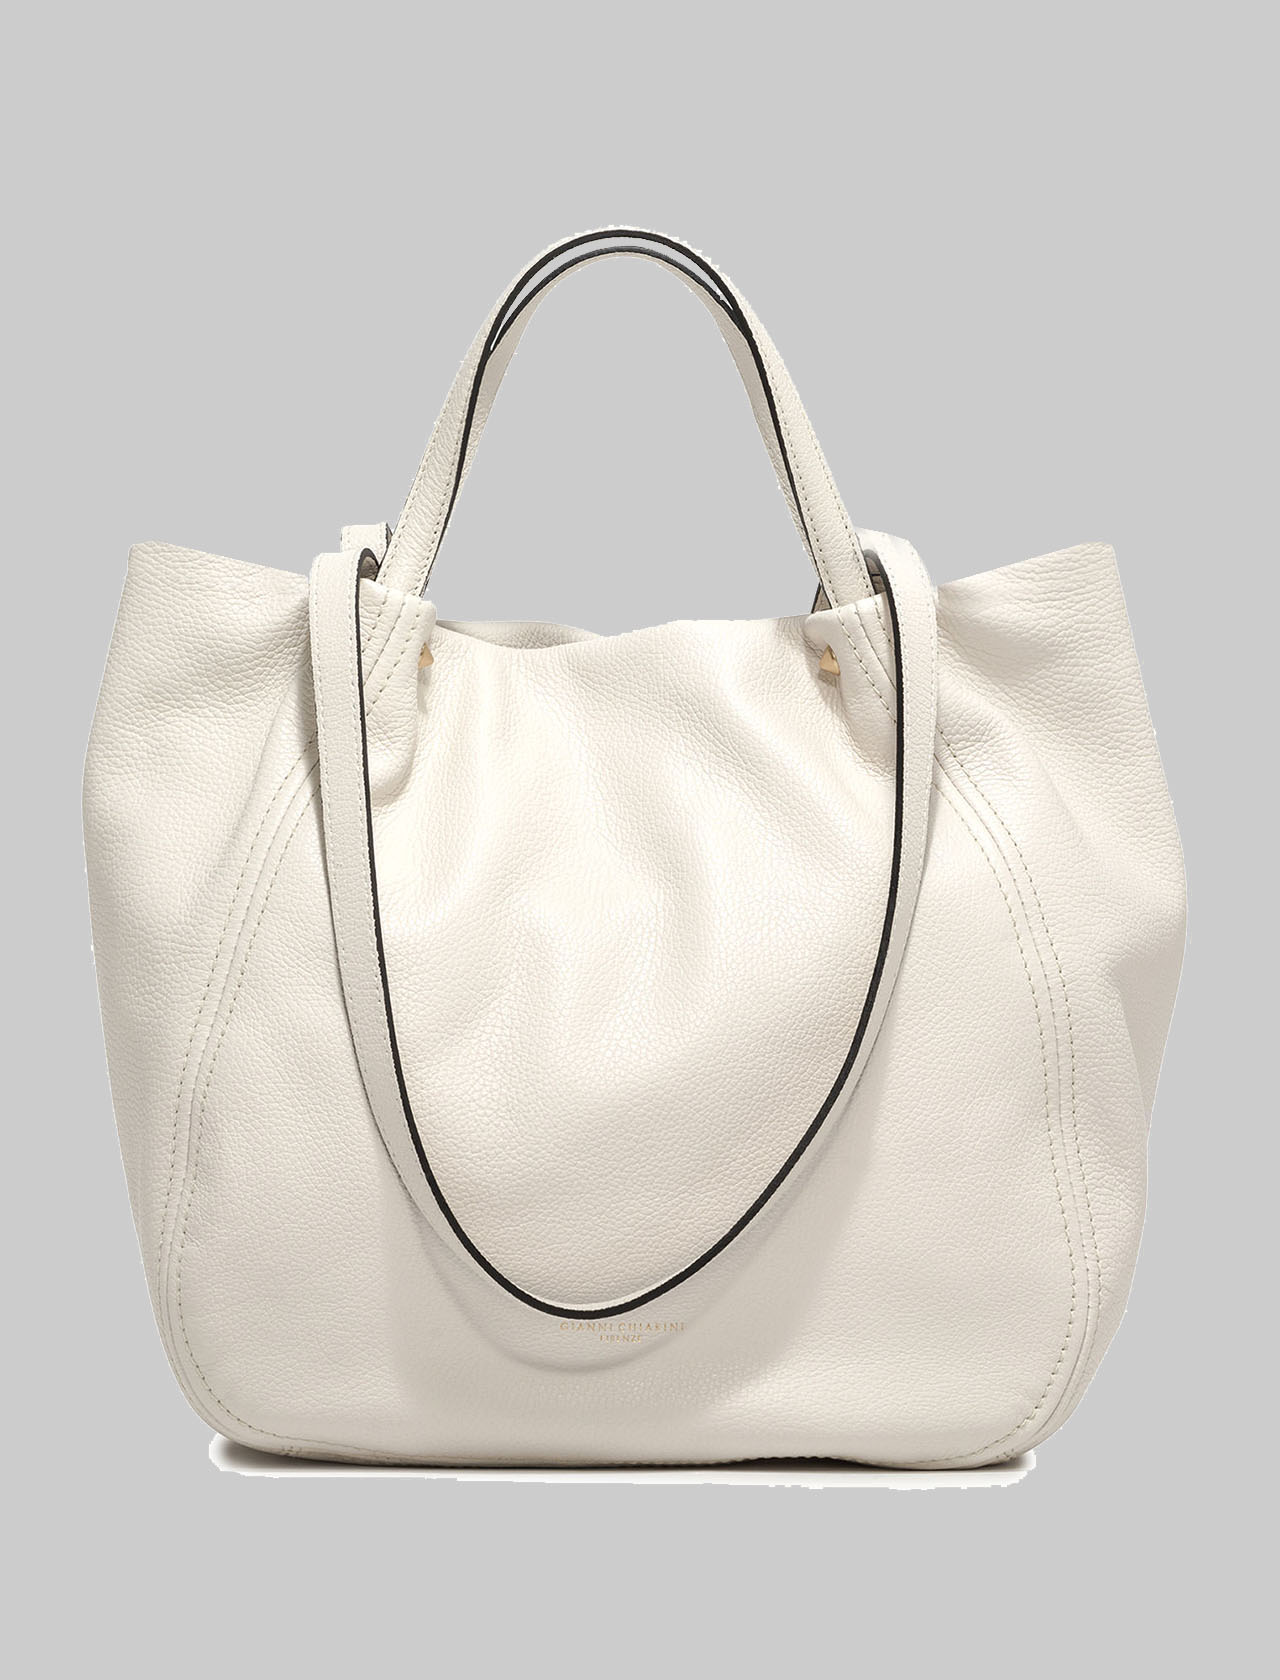 Toulip Shoulder Bag In Cream Leather With Double Handle And Removable And Adjustable Shoulder Strap Gianni Chiarini | Bags and backpacks | BS84653890